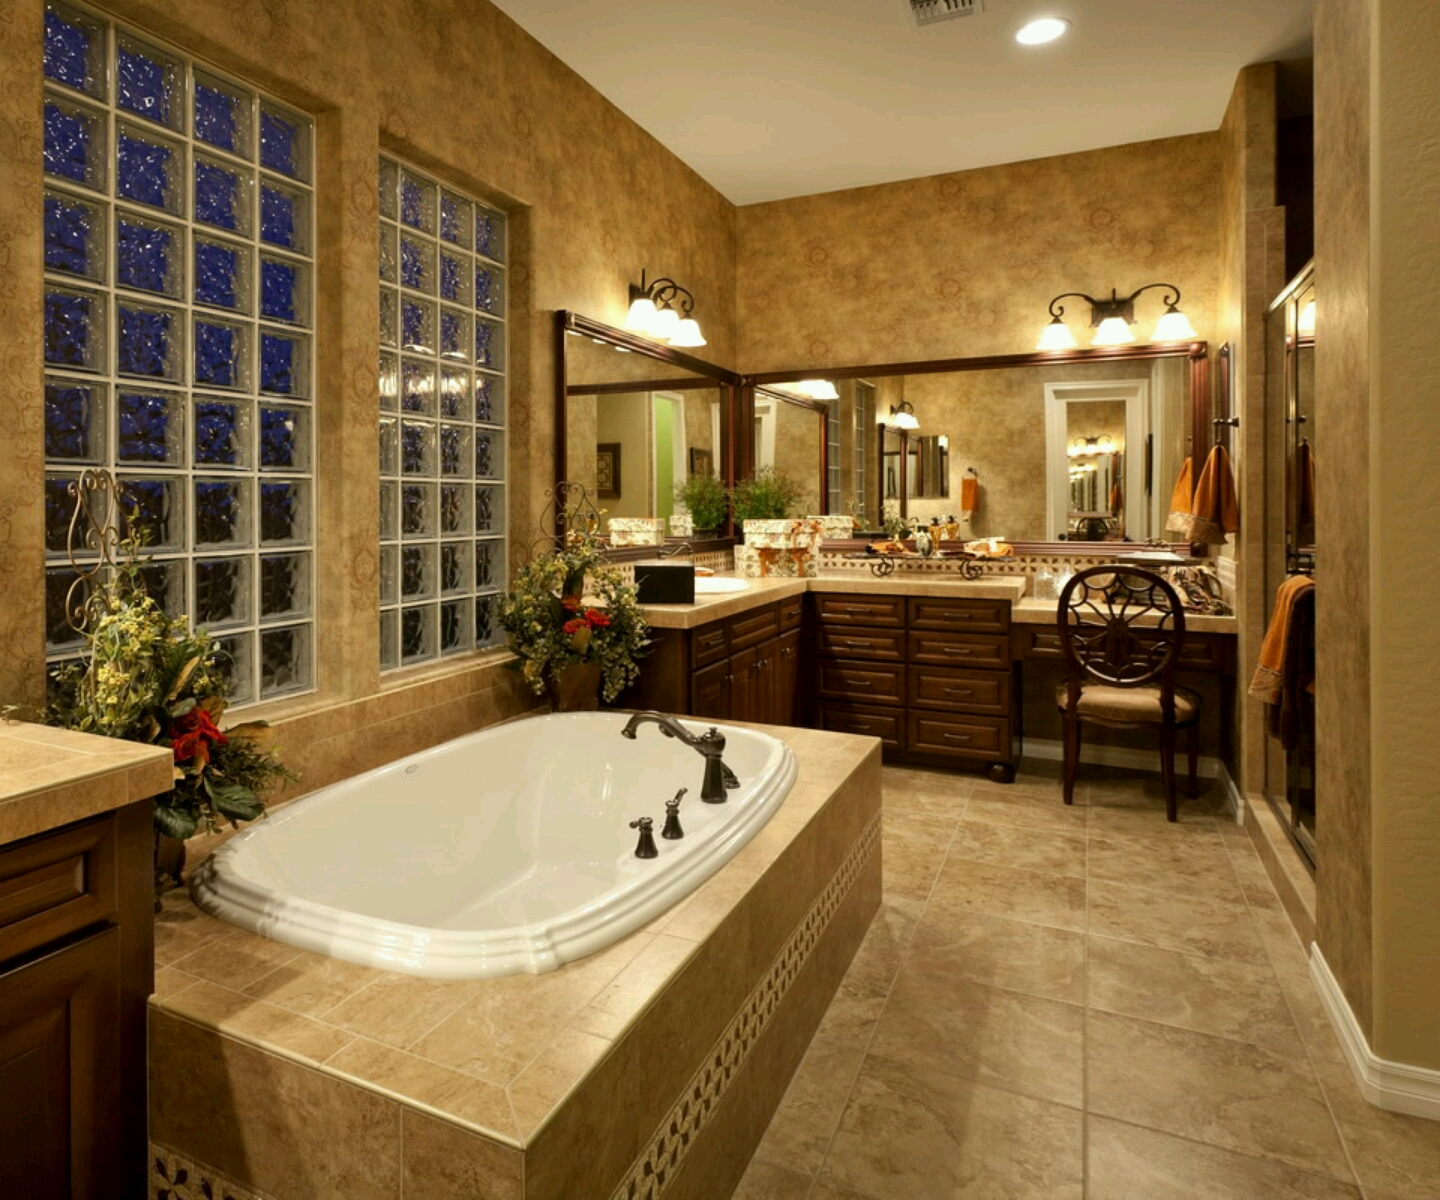 12 Luxurious Bathroom Design Ideas: Luxury Modern Bathrooms Designs Ideas.